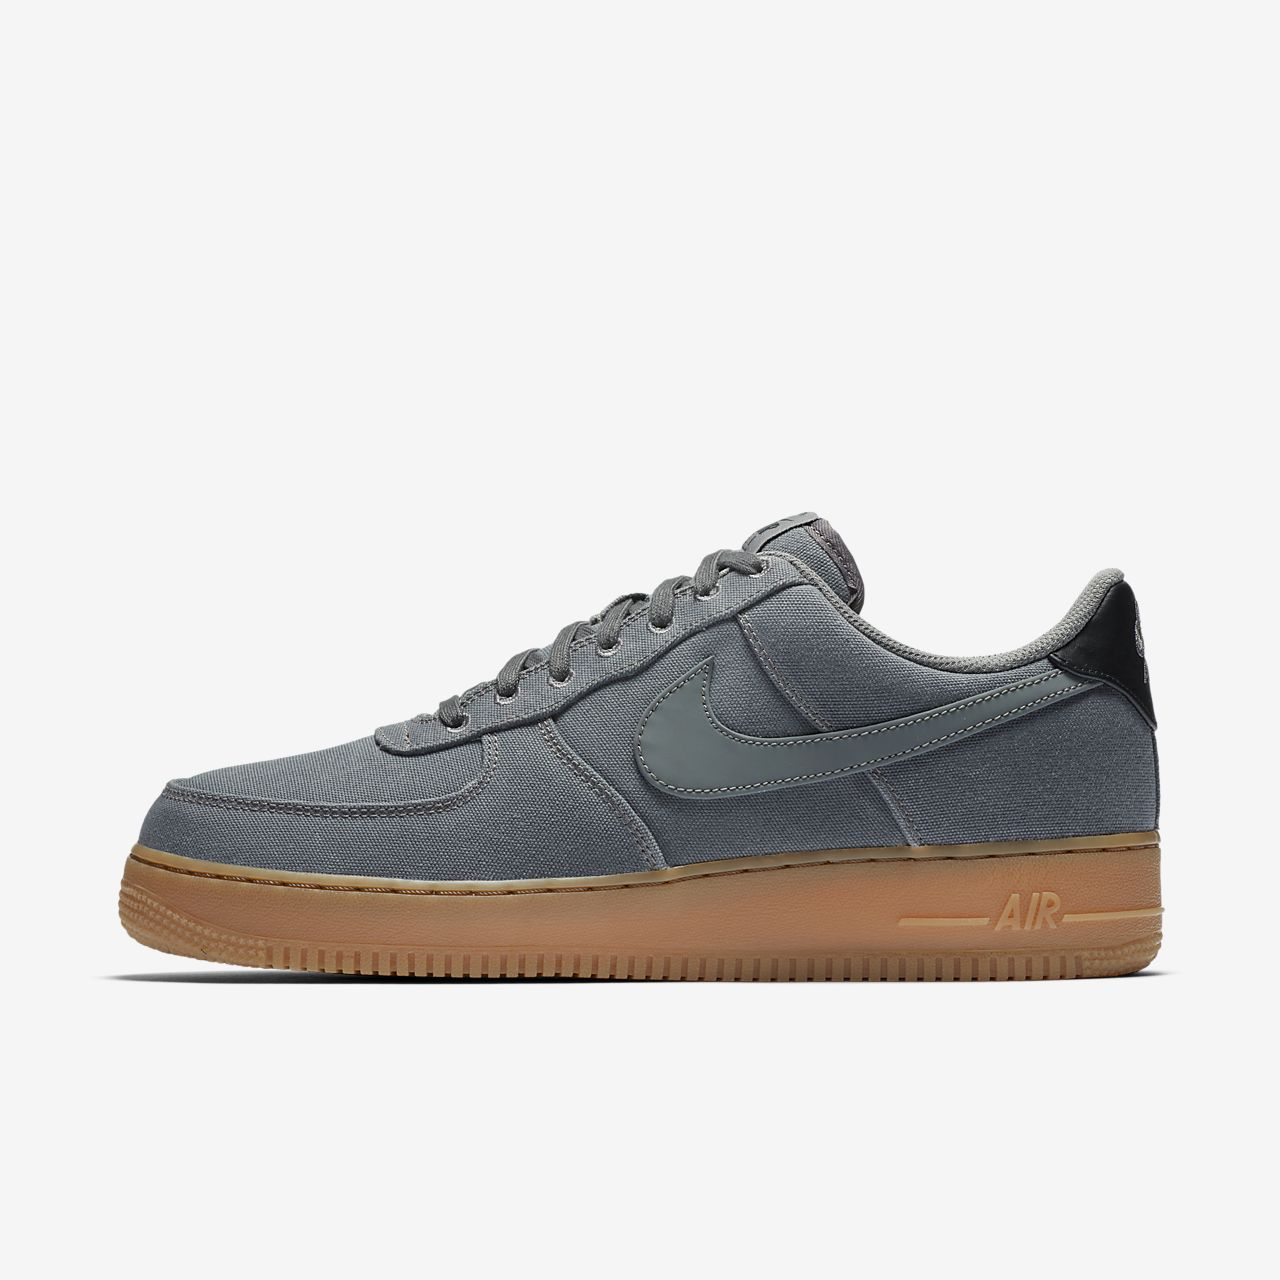 timeless design 48fa2 43d09 ... Buty męskie Nike Air Force 1 07 LV8 Style